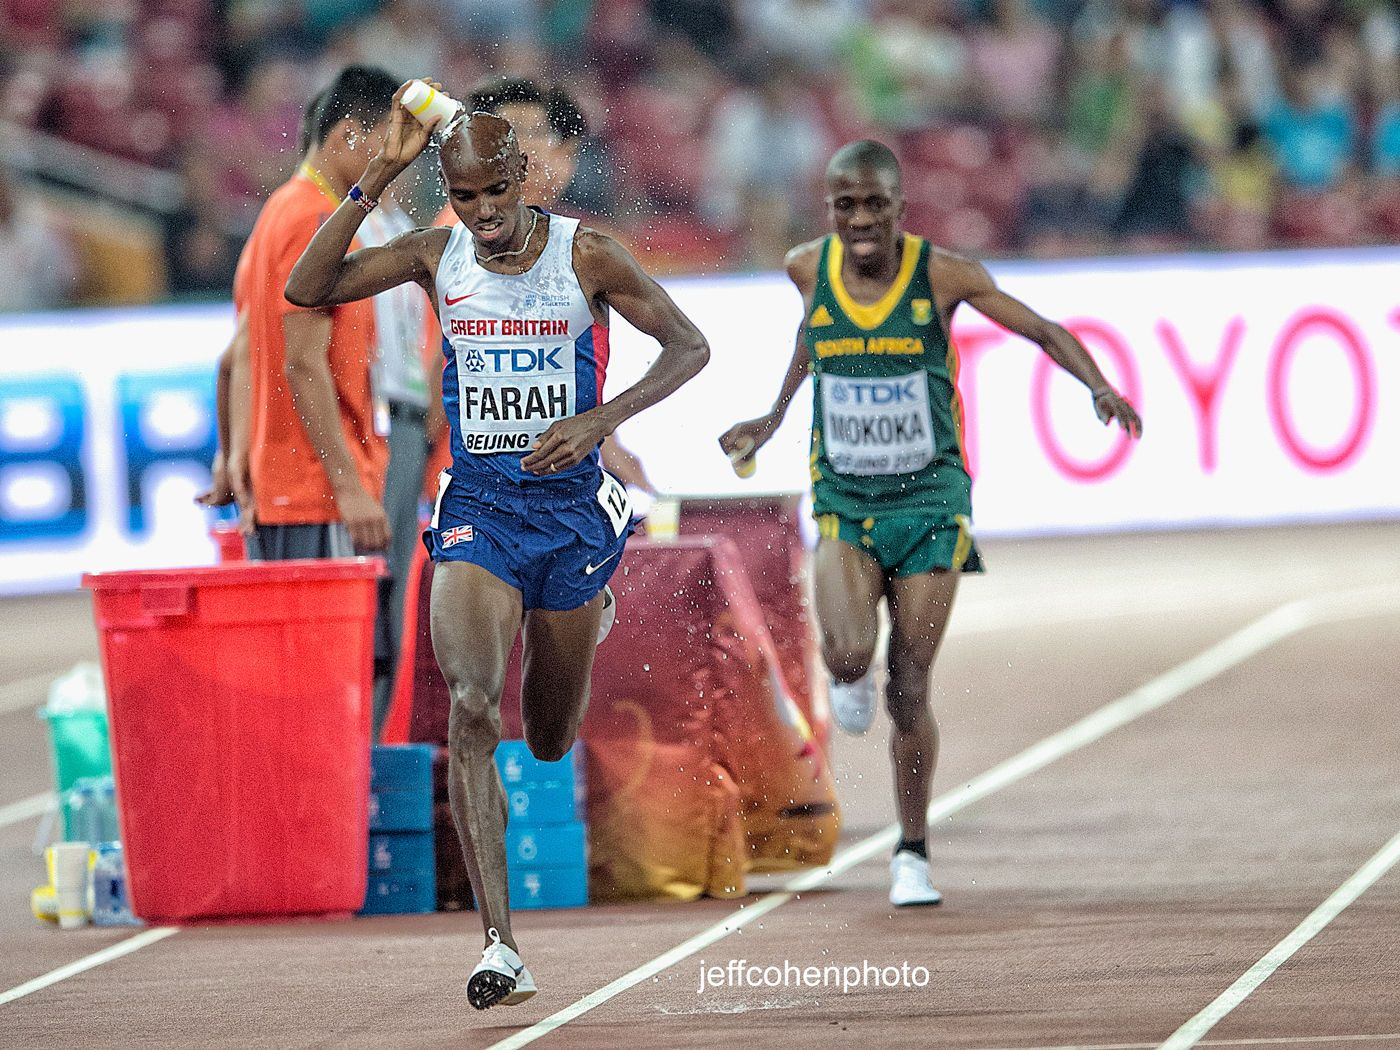 1beijing2015_day1_farah_10k_watr_jeff_cohen_photo_1496_web.jpg